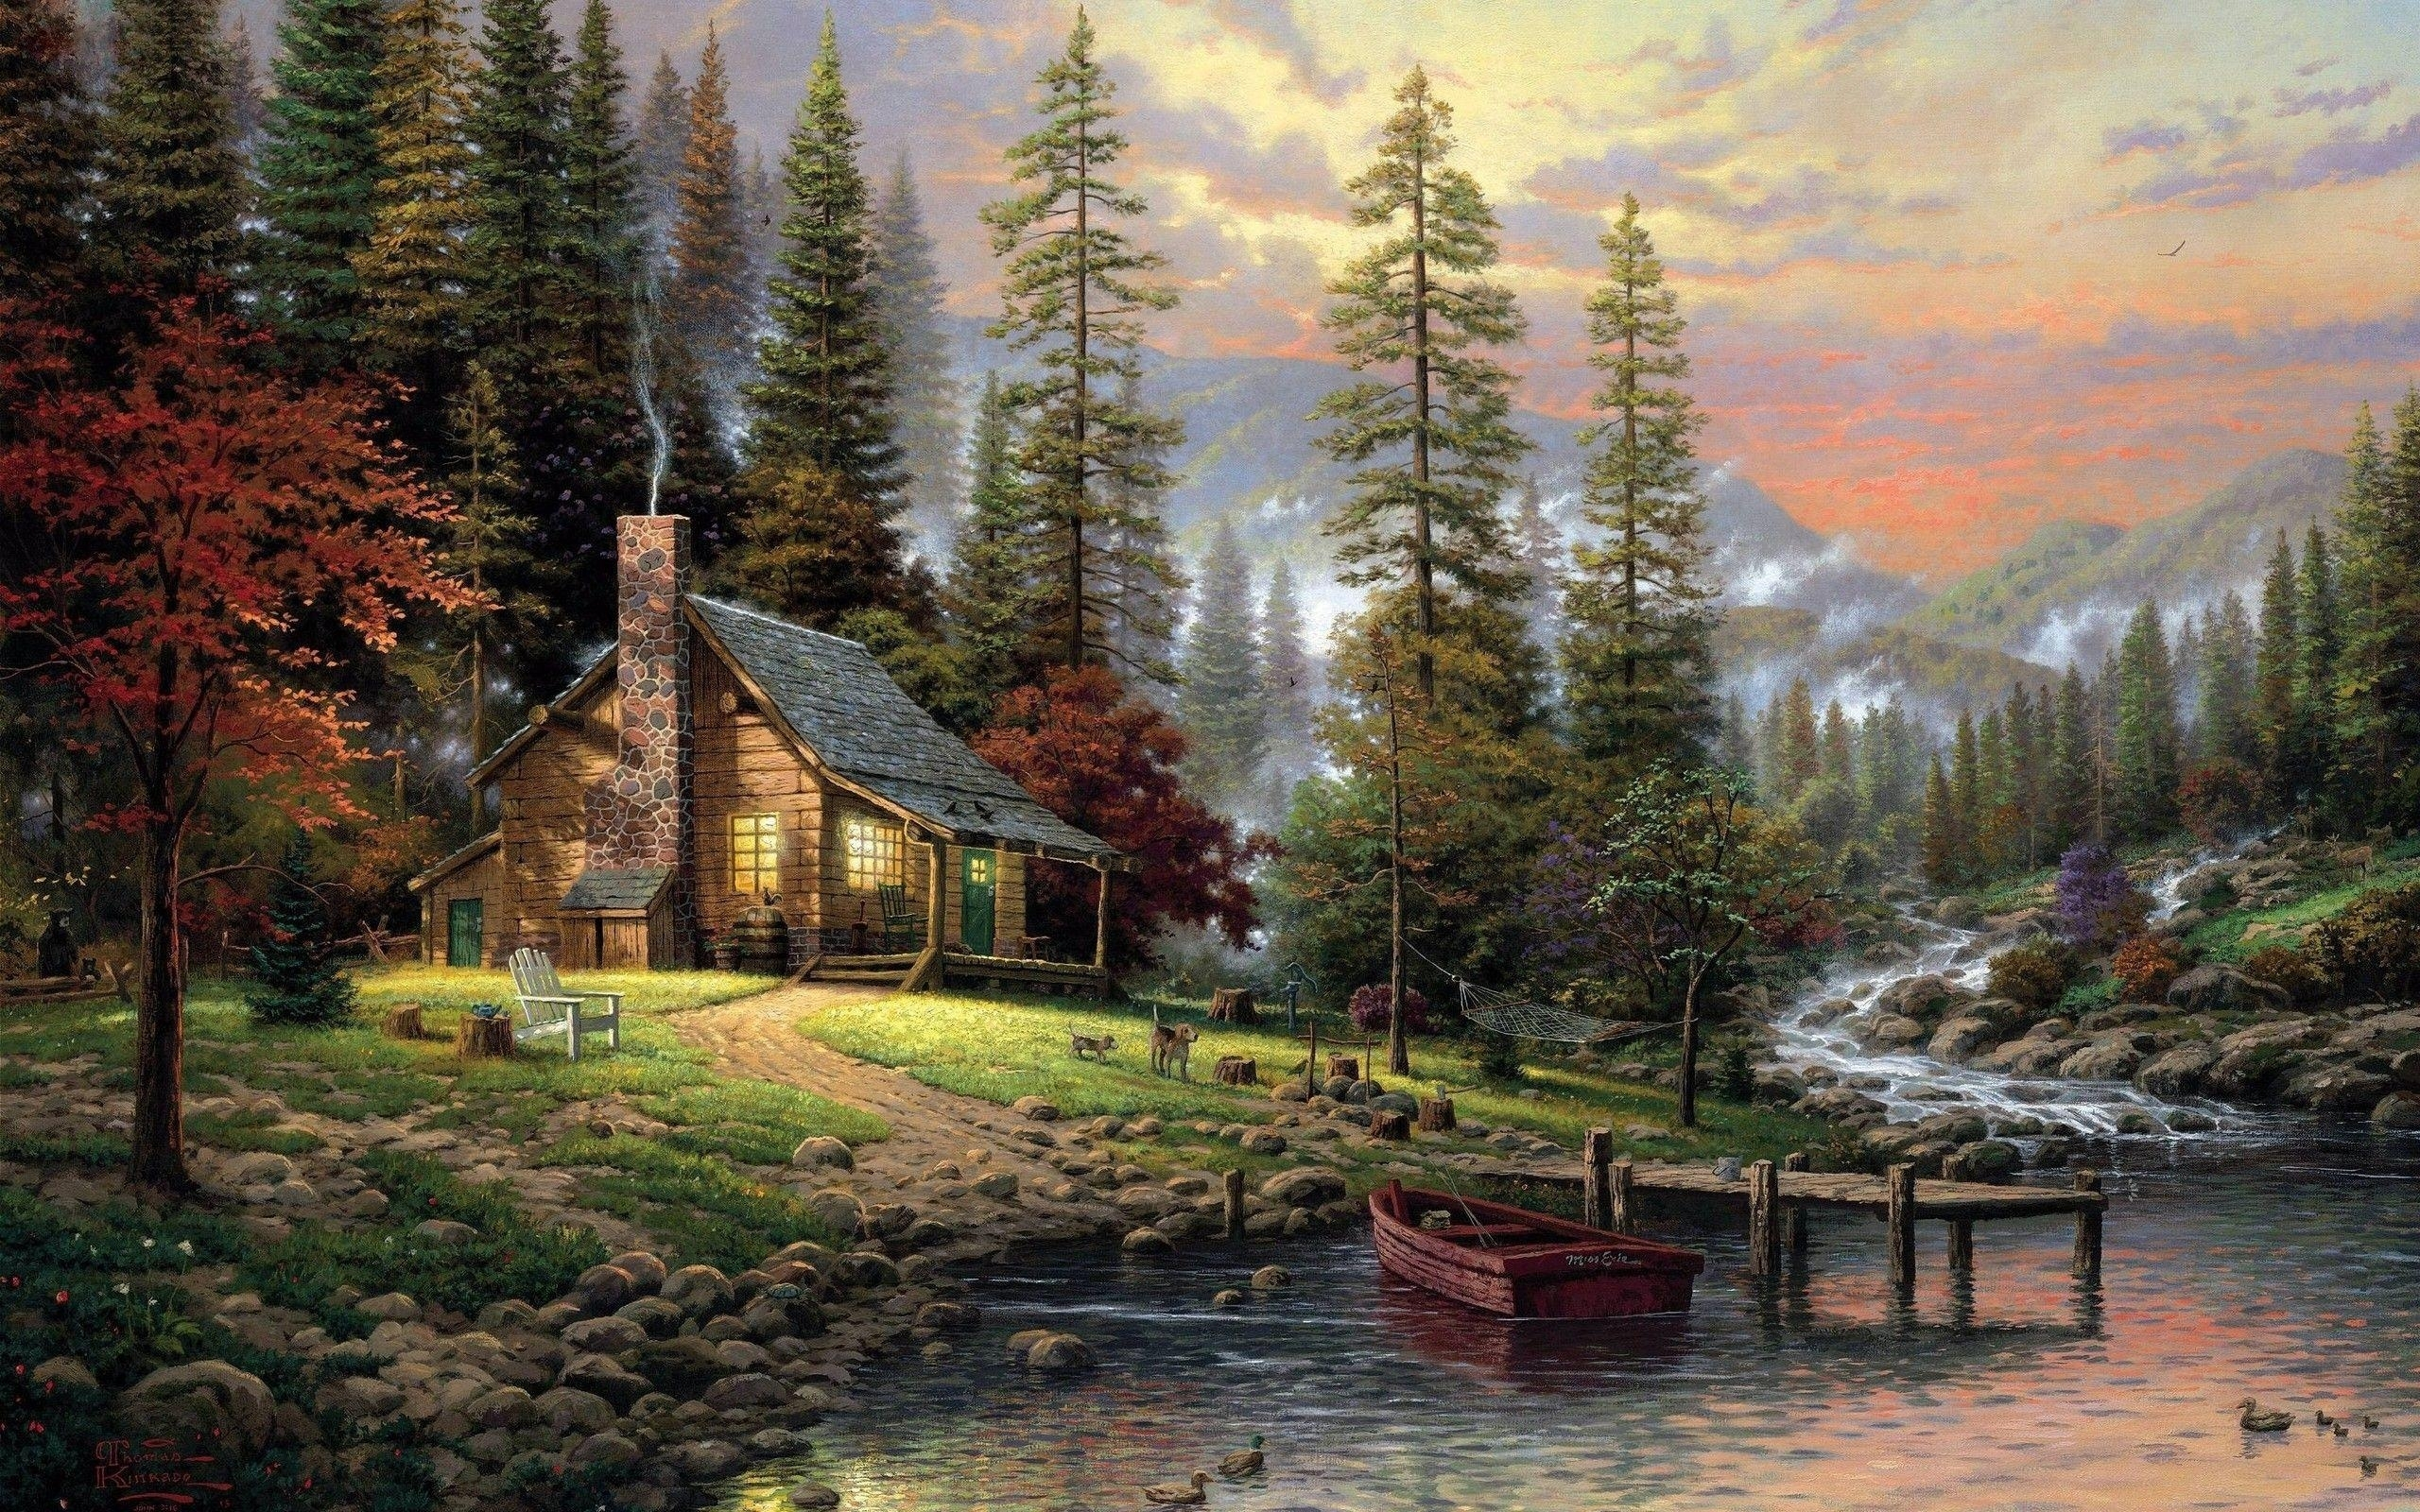 10 Top Bob Ross Desktop Wallpaper FULL HD 1080p For PC Background